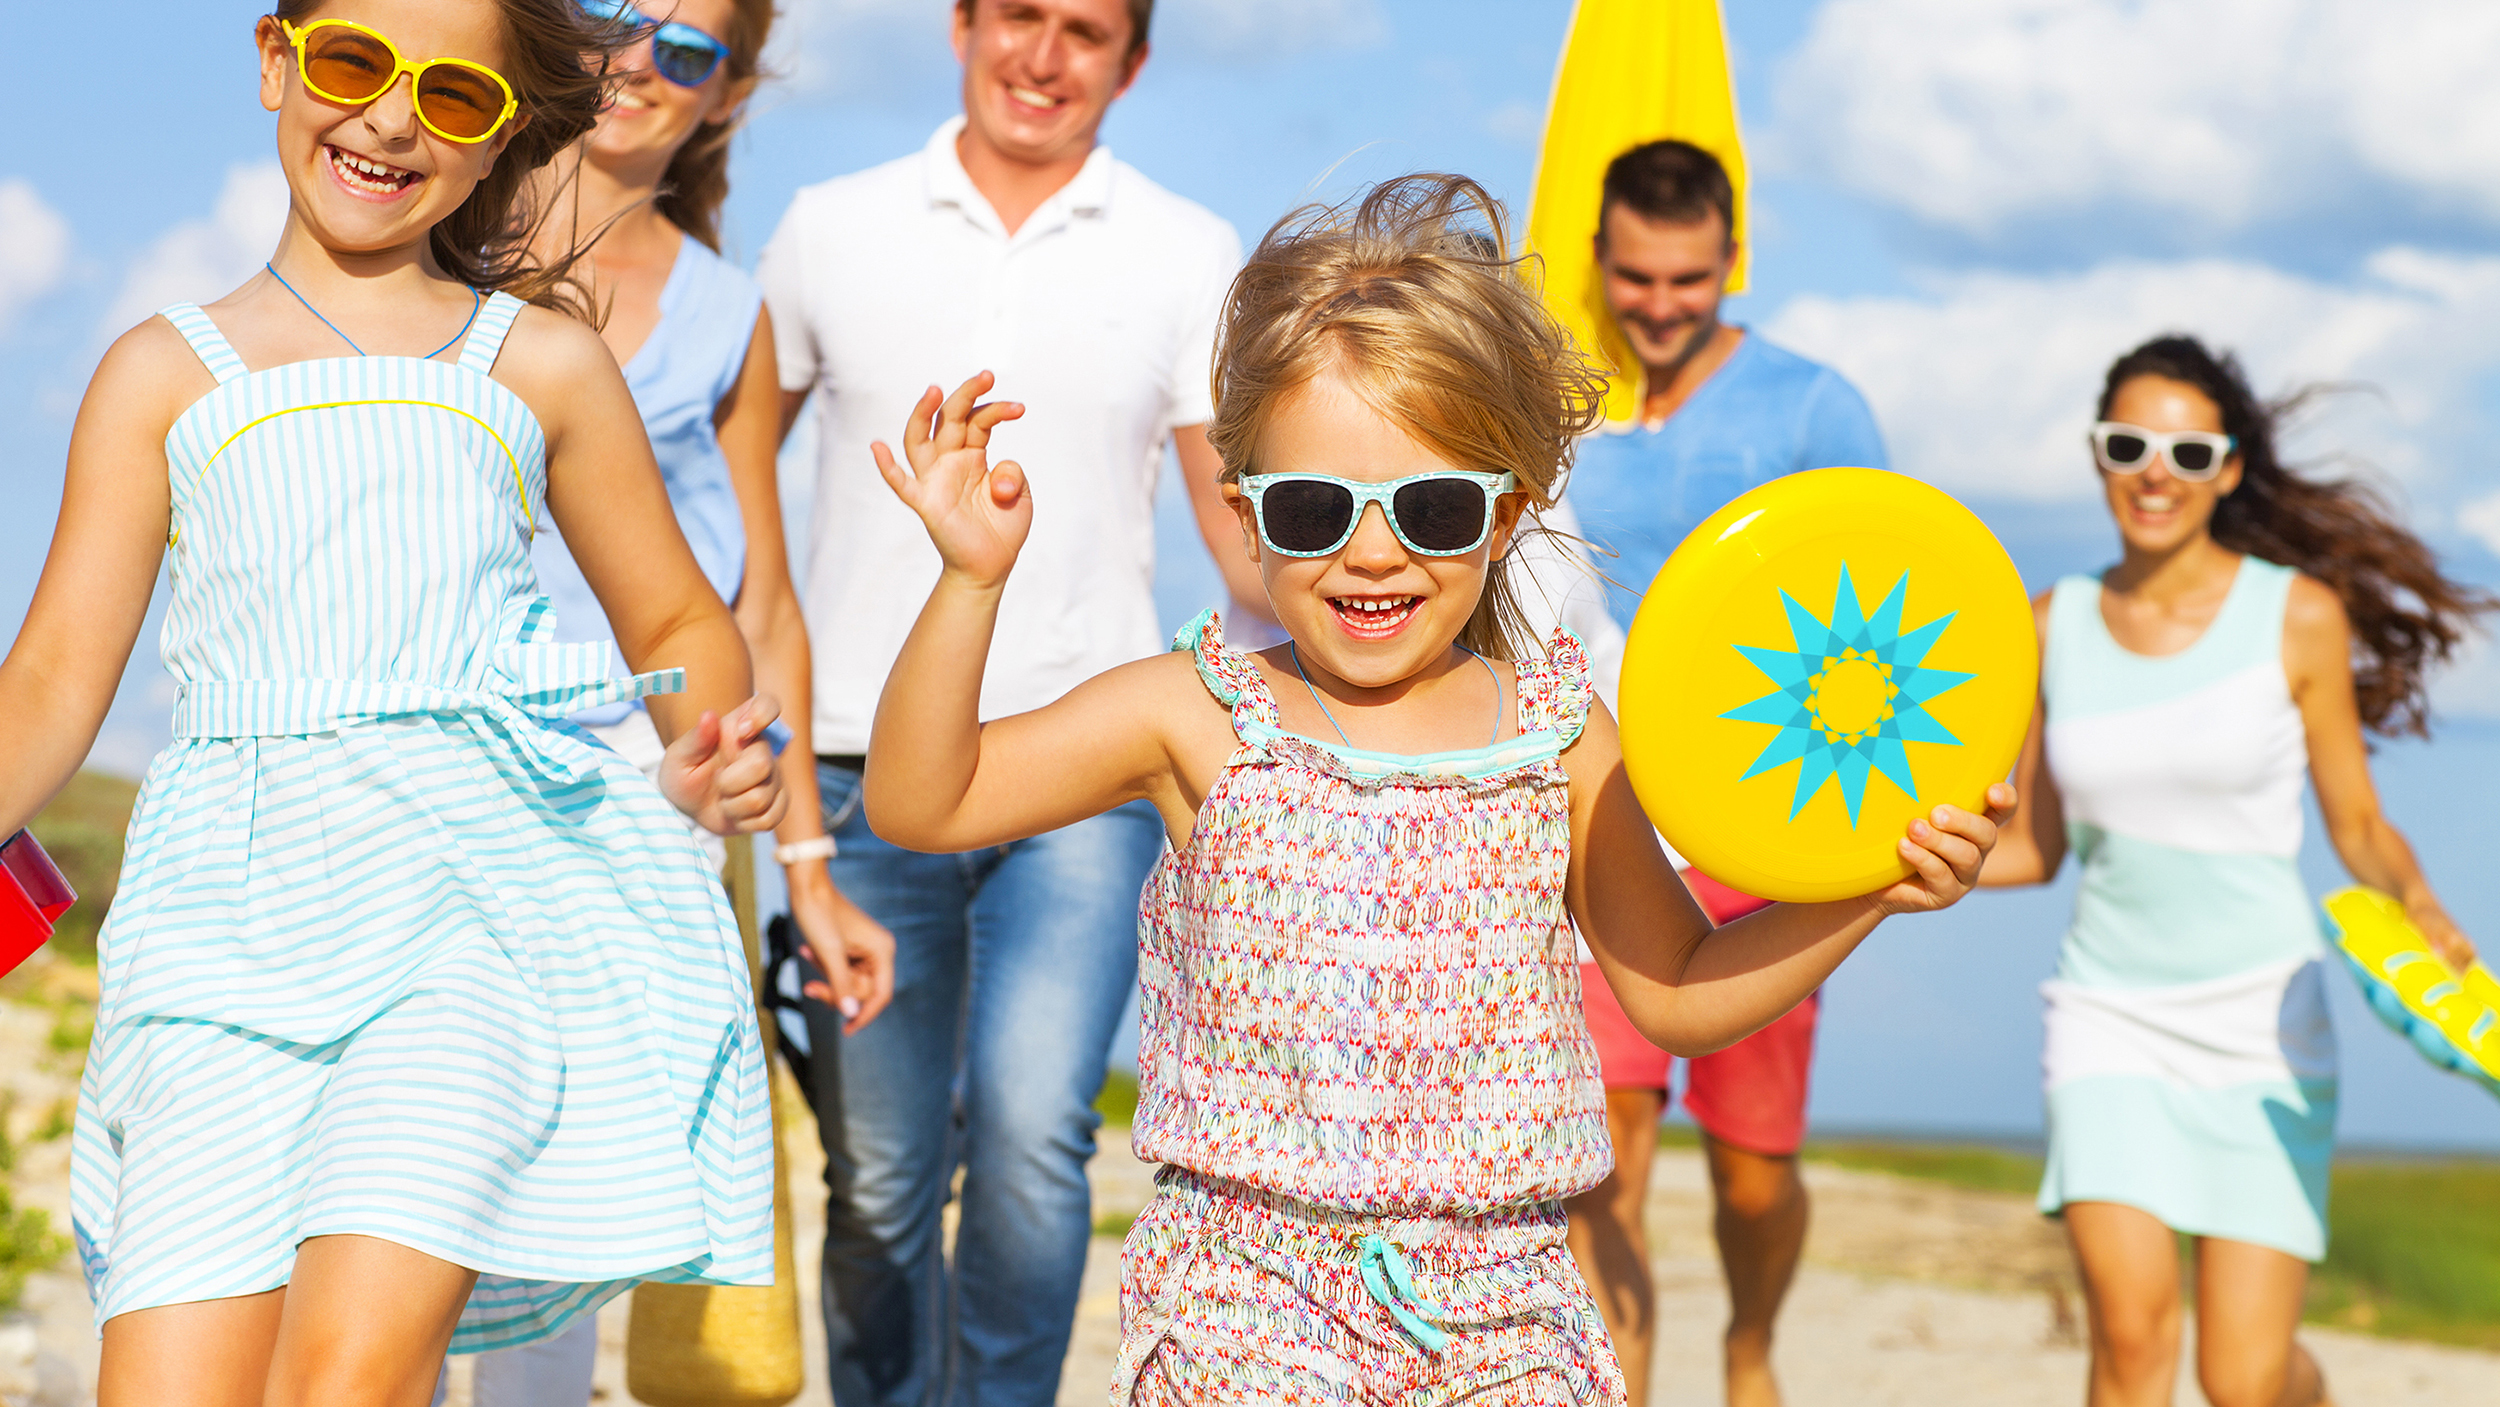 a8763827c 4 summer fashion trends for the whole family to try